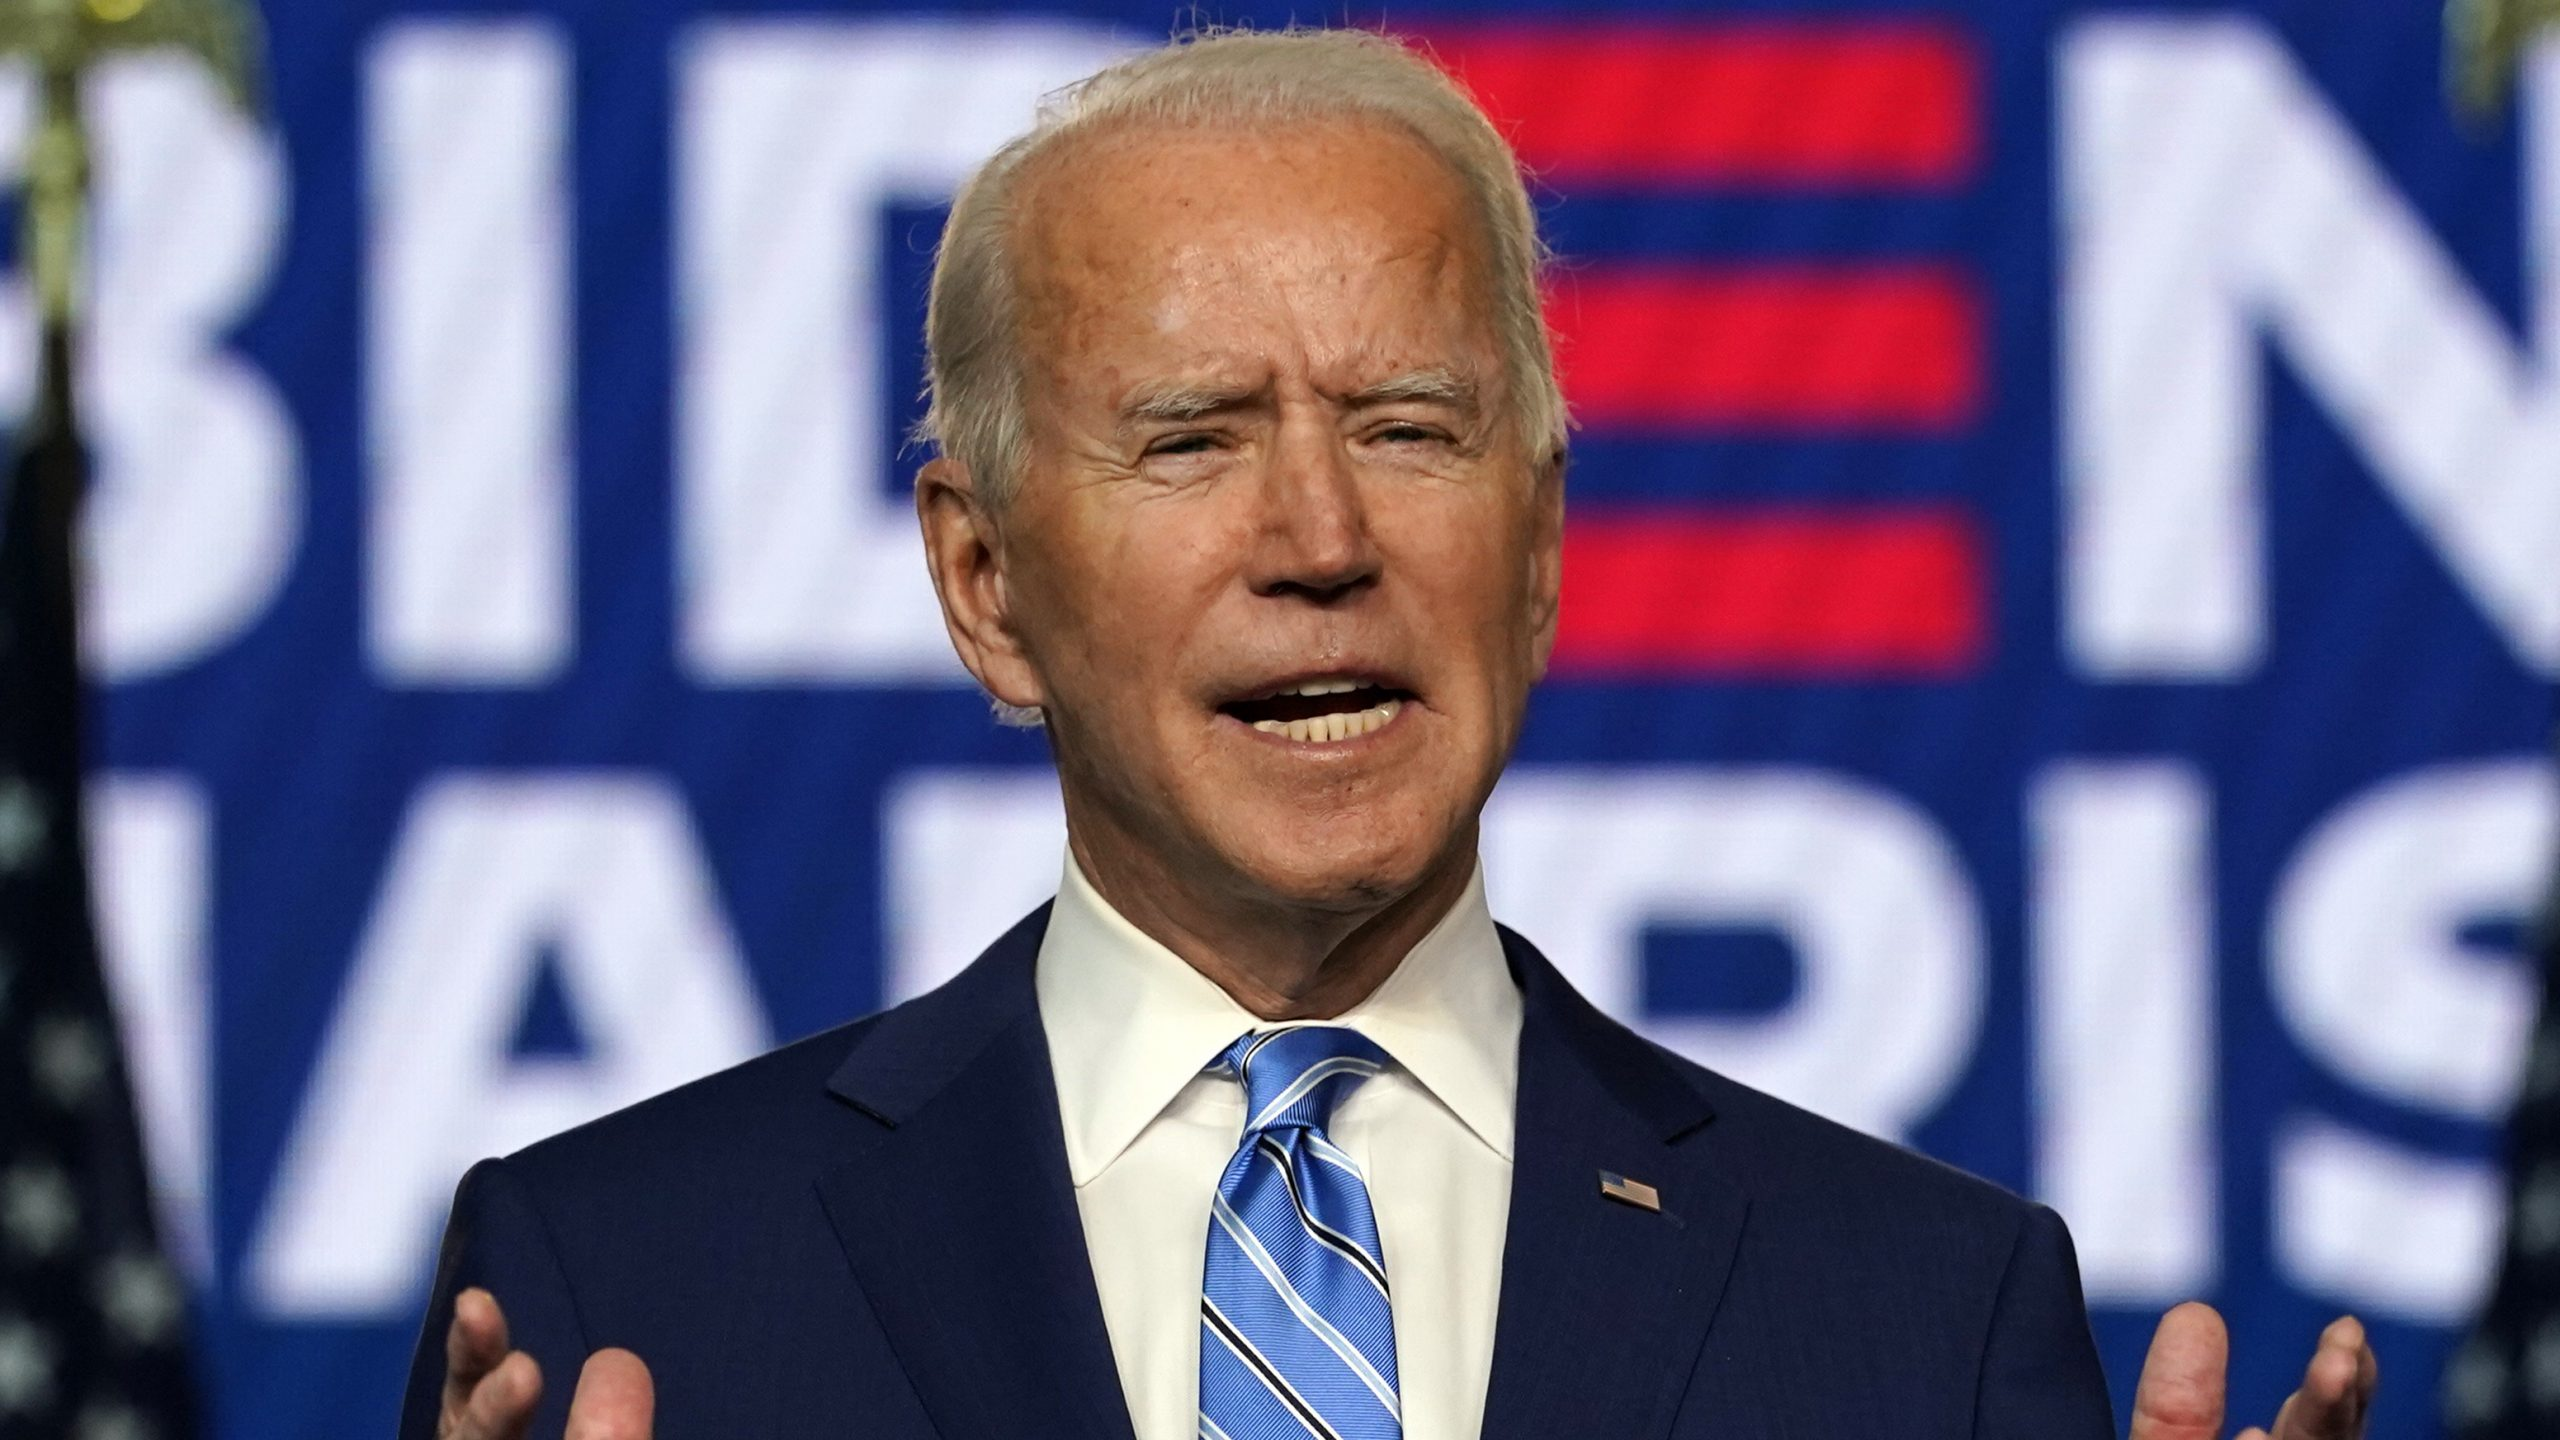 China looms as Biden's biggest foreign policy challenge. Here's where he stands